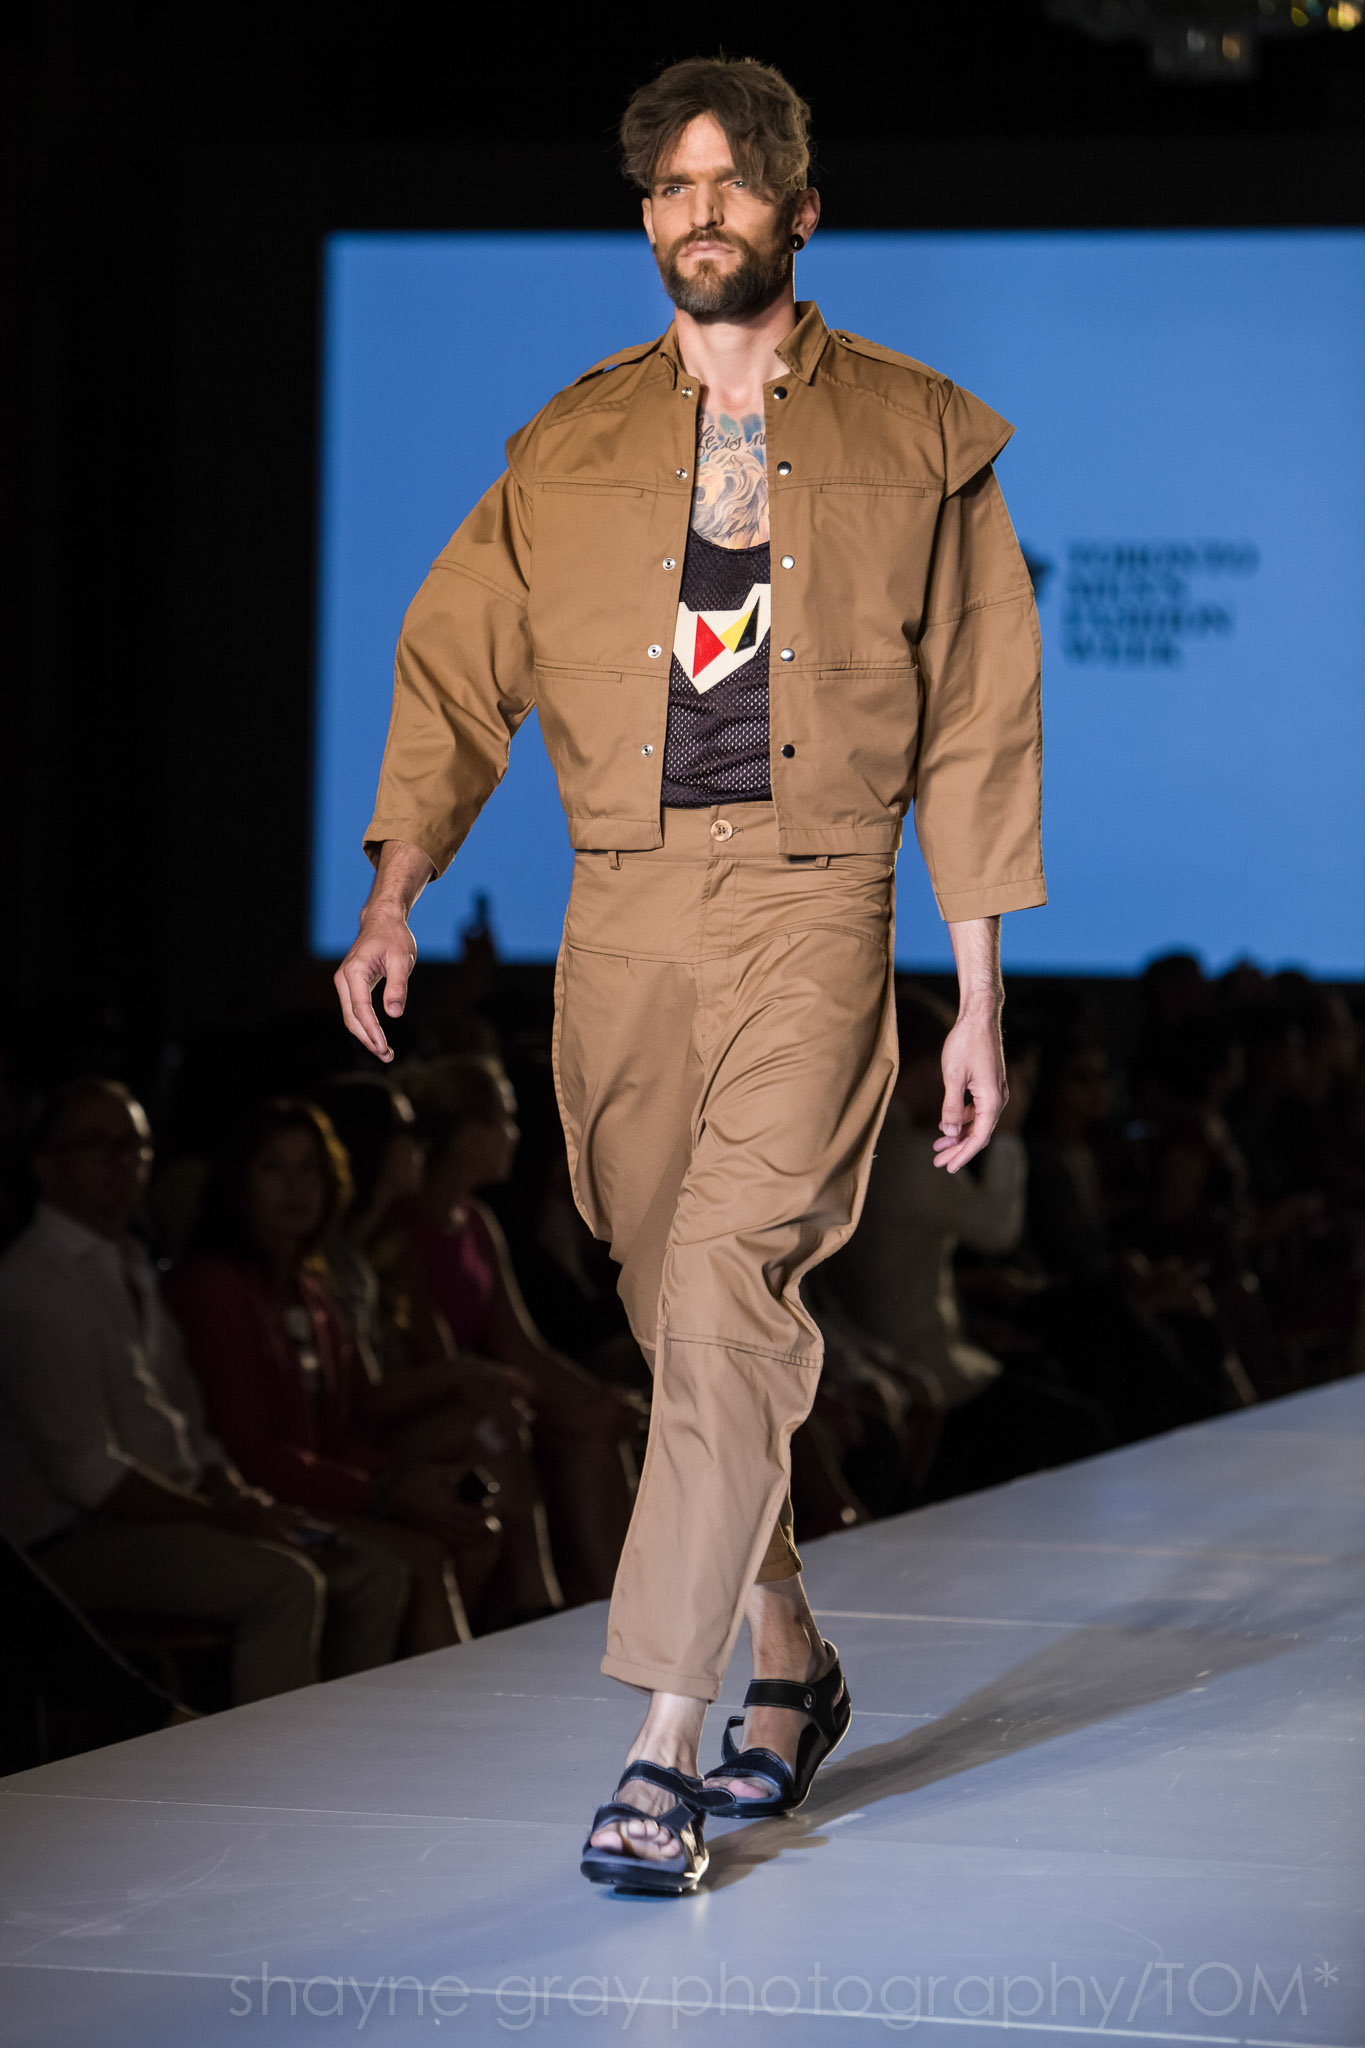 Shayne-Gray-Toronto-men's-fashion_week-TOM-jose-duran-7771.jpg